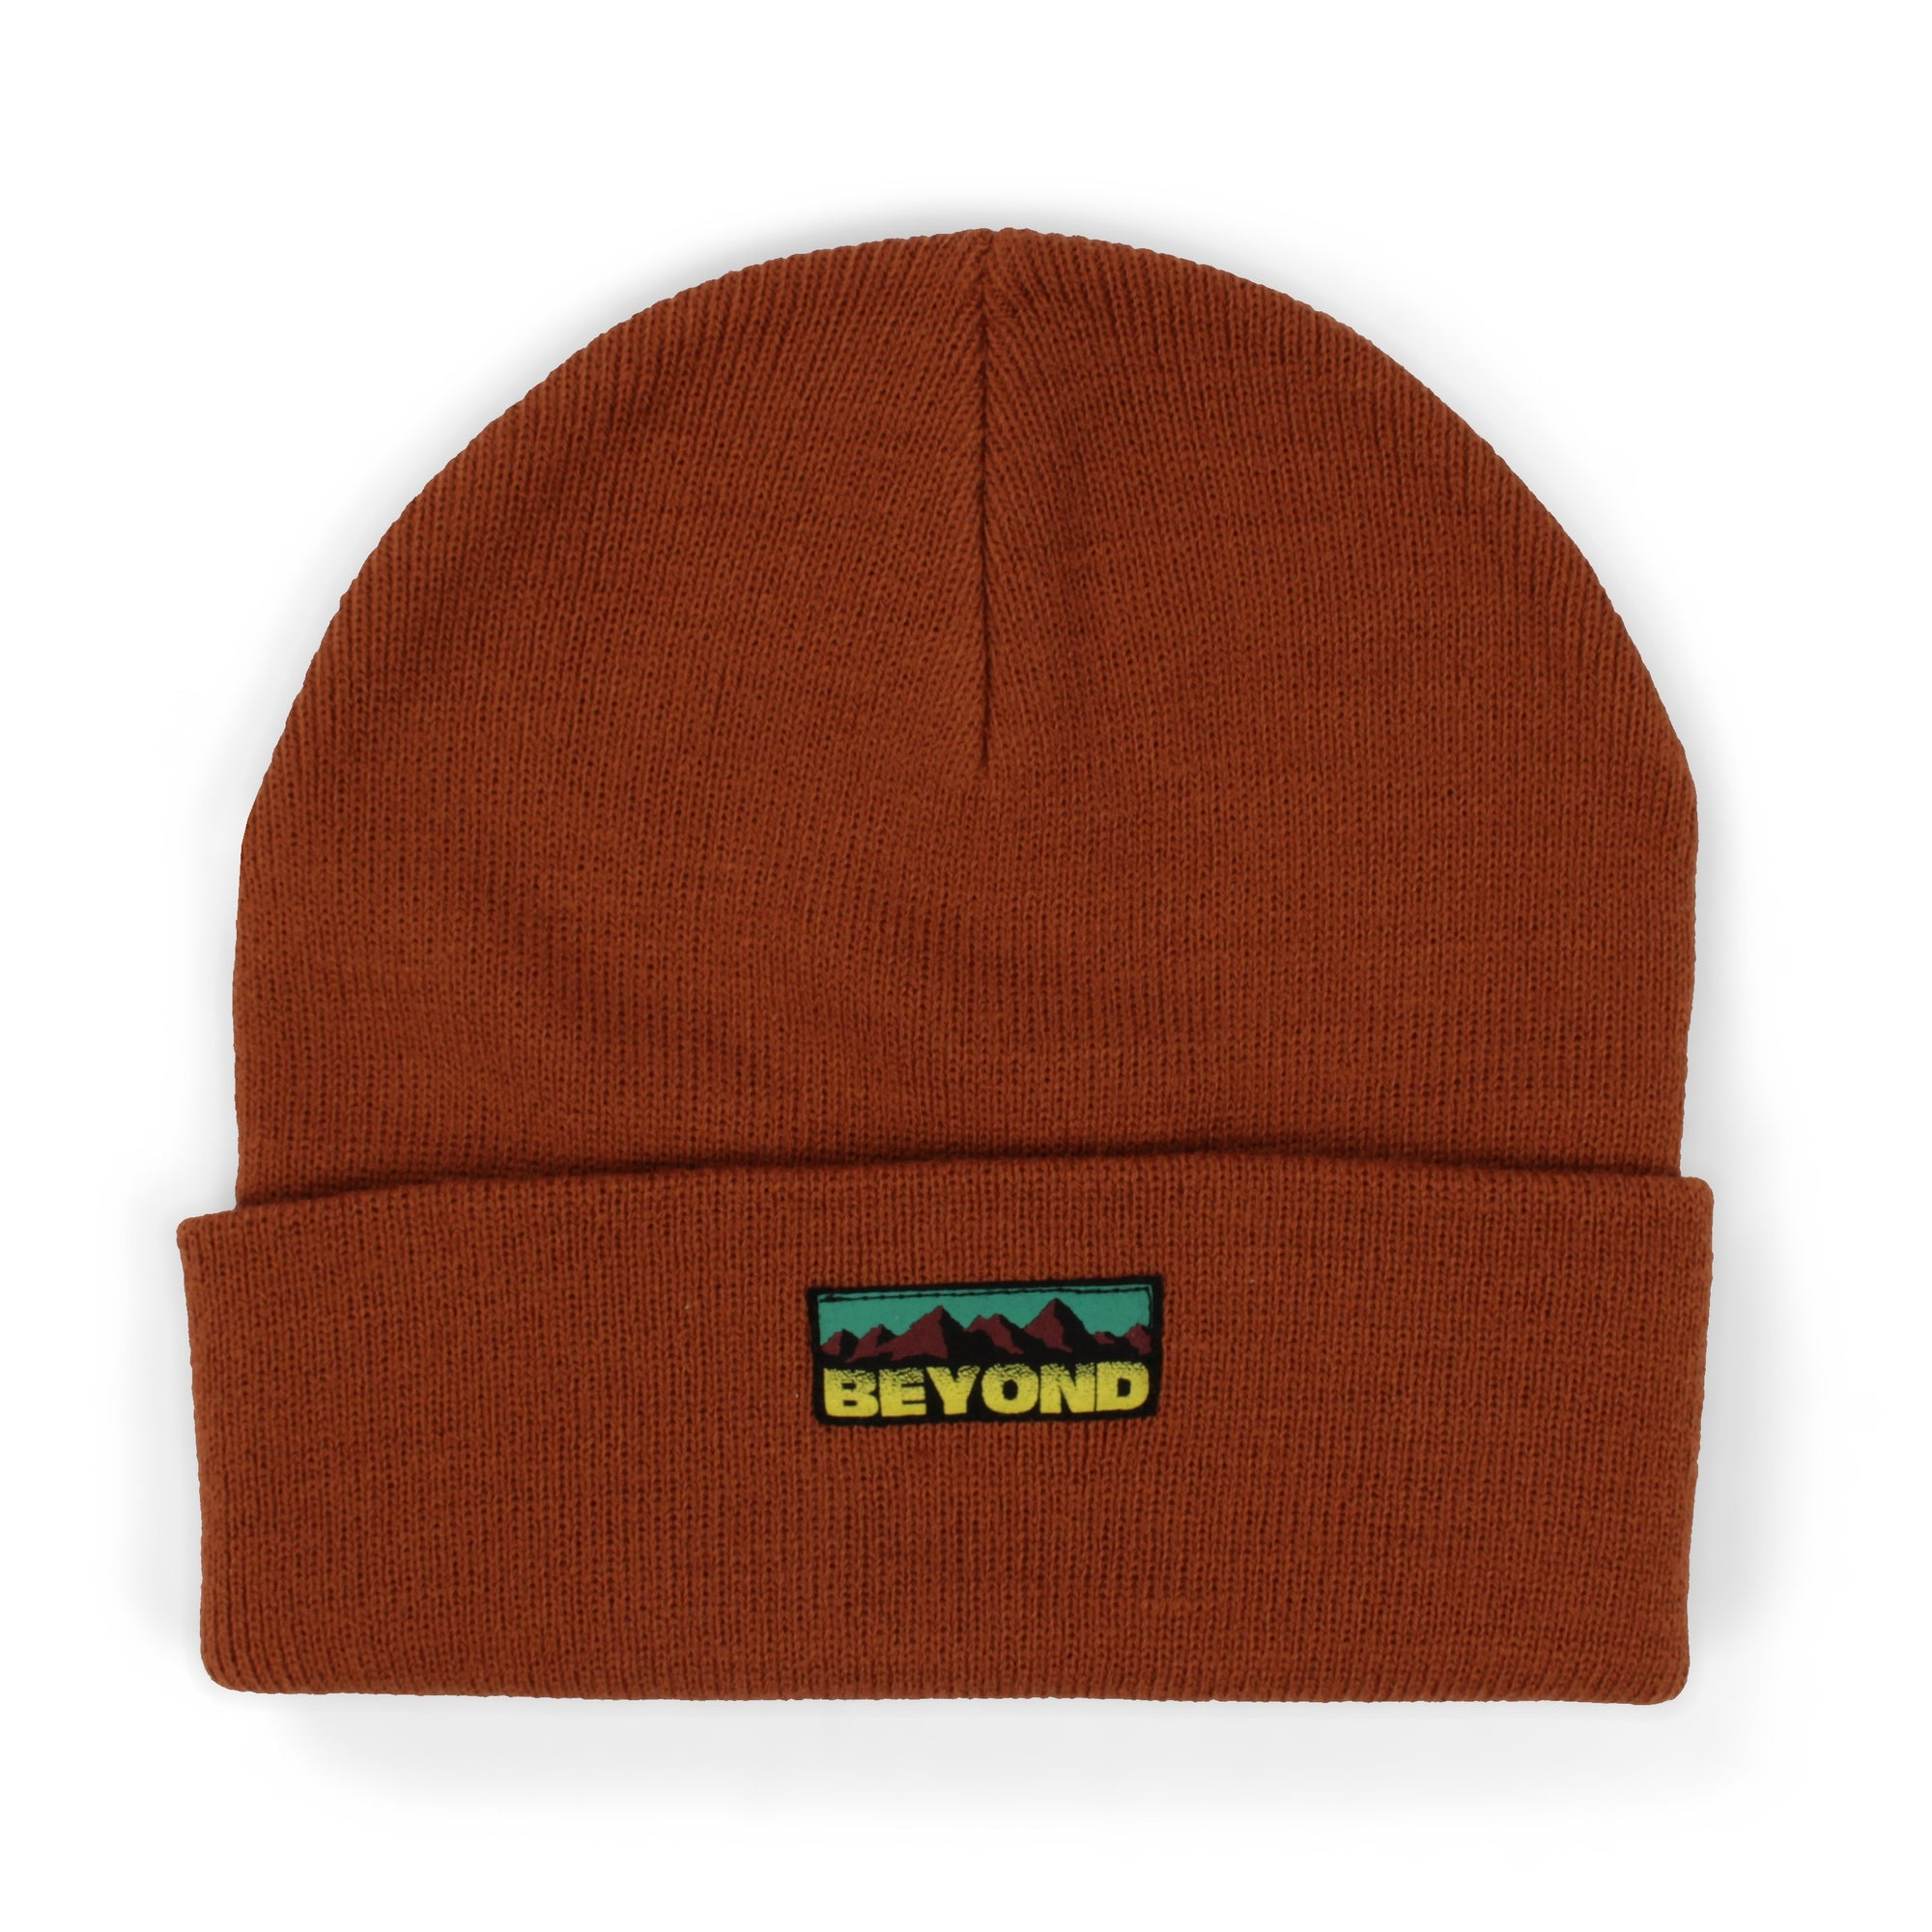 Beyond Mt Patchemanjaro Beanie Product Photo #1